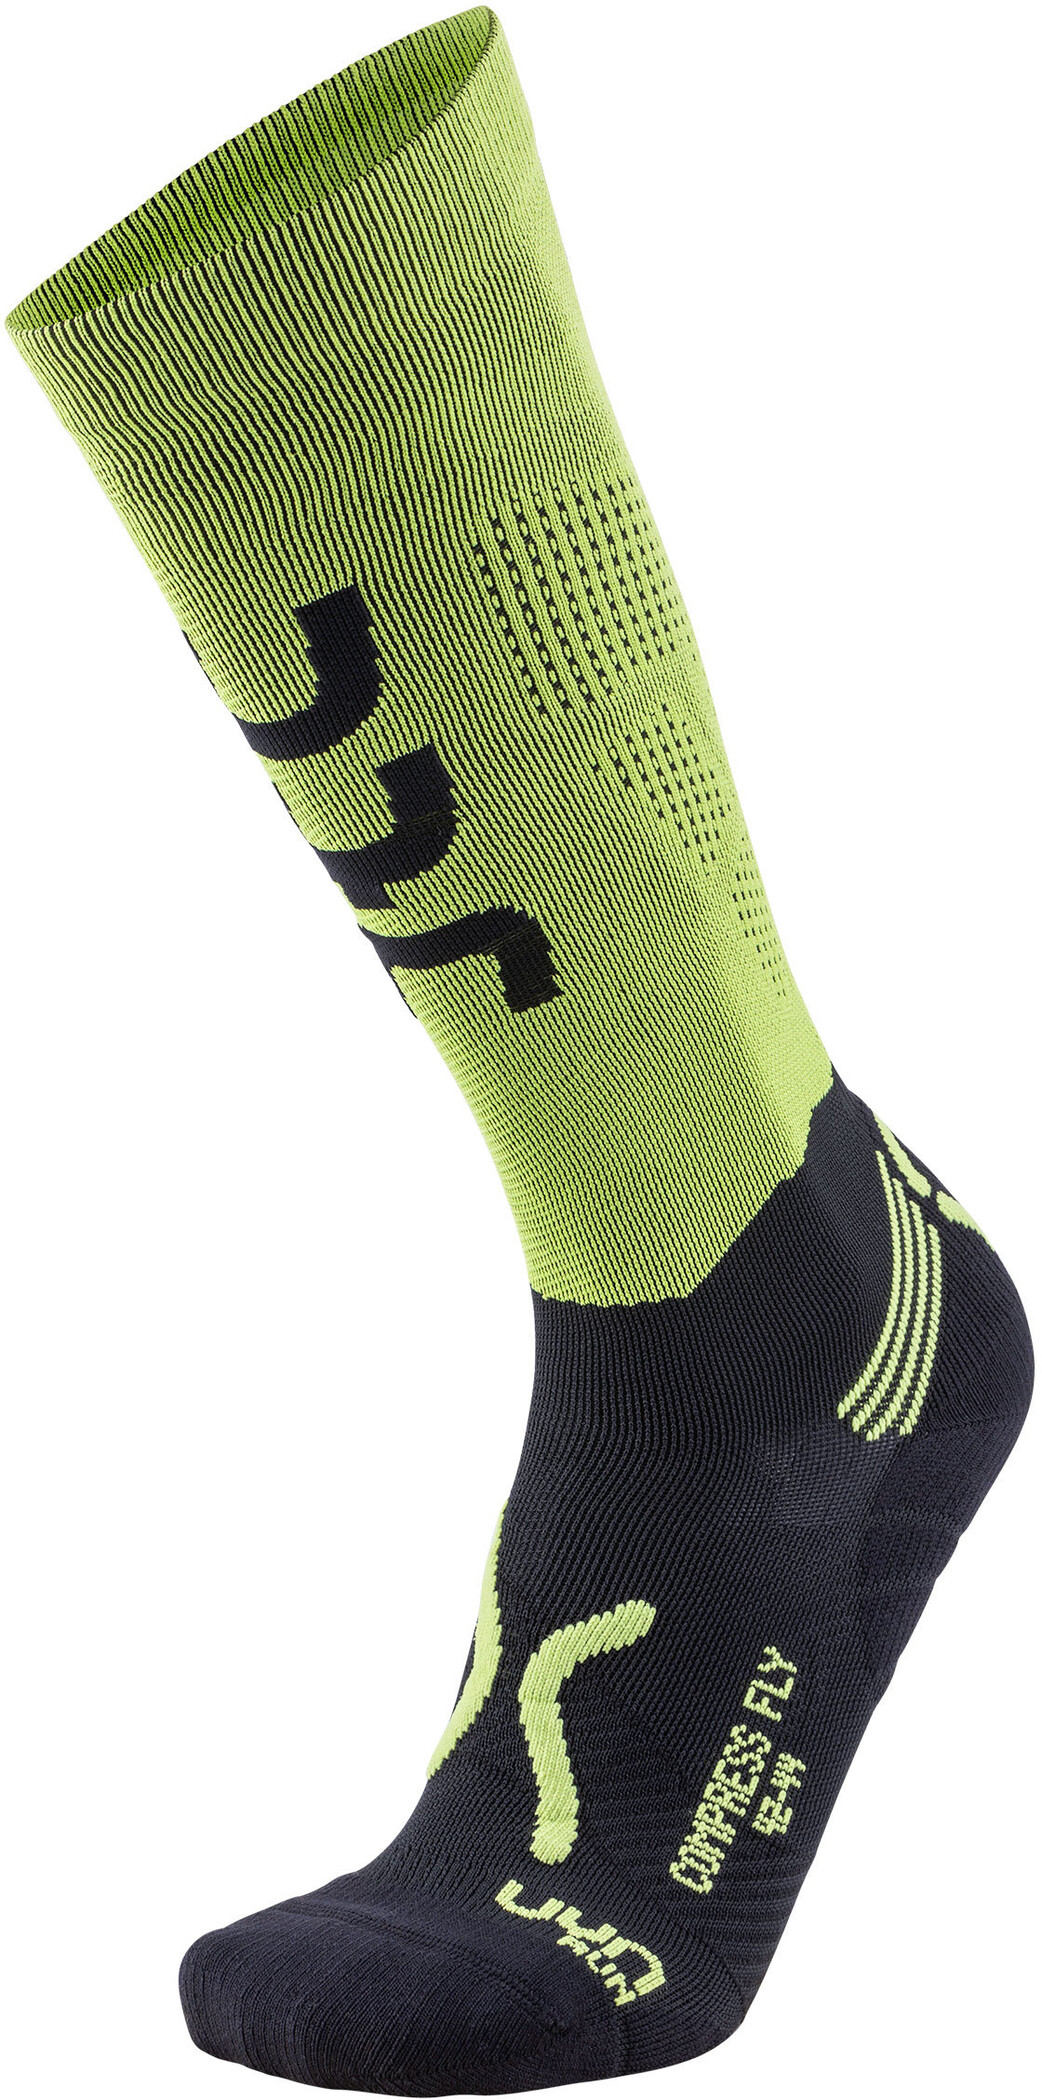 UYN Run Compression Fly Strømper Herrer, acid green/black (2019) | Kompressionstøj